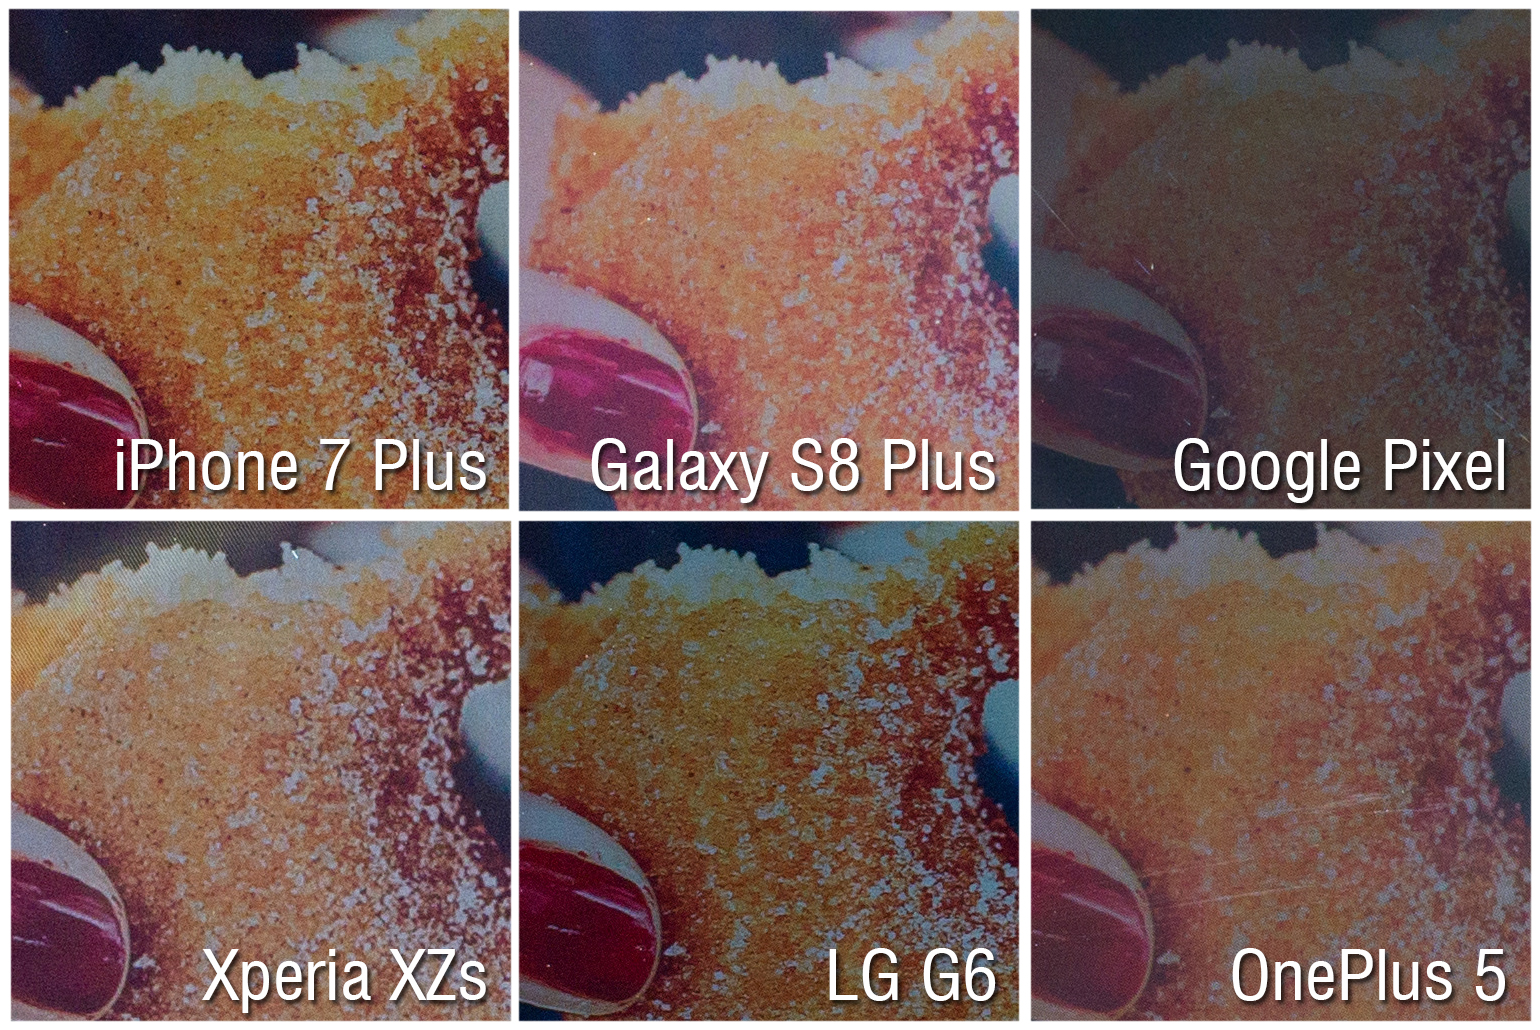 iphone 7 galaxy s8 oneplus 5 comparatie ecrane 1